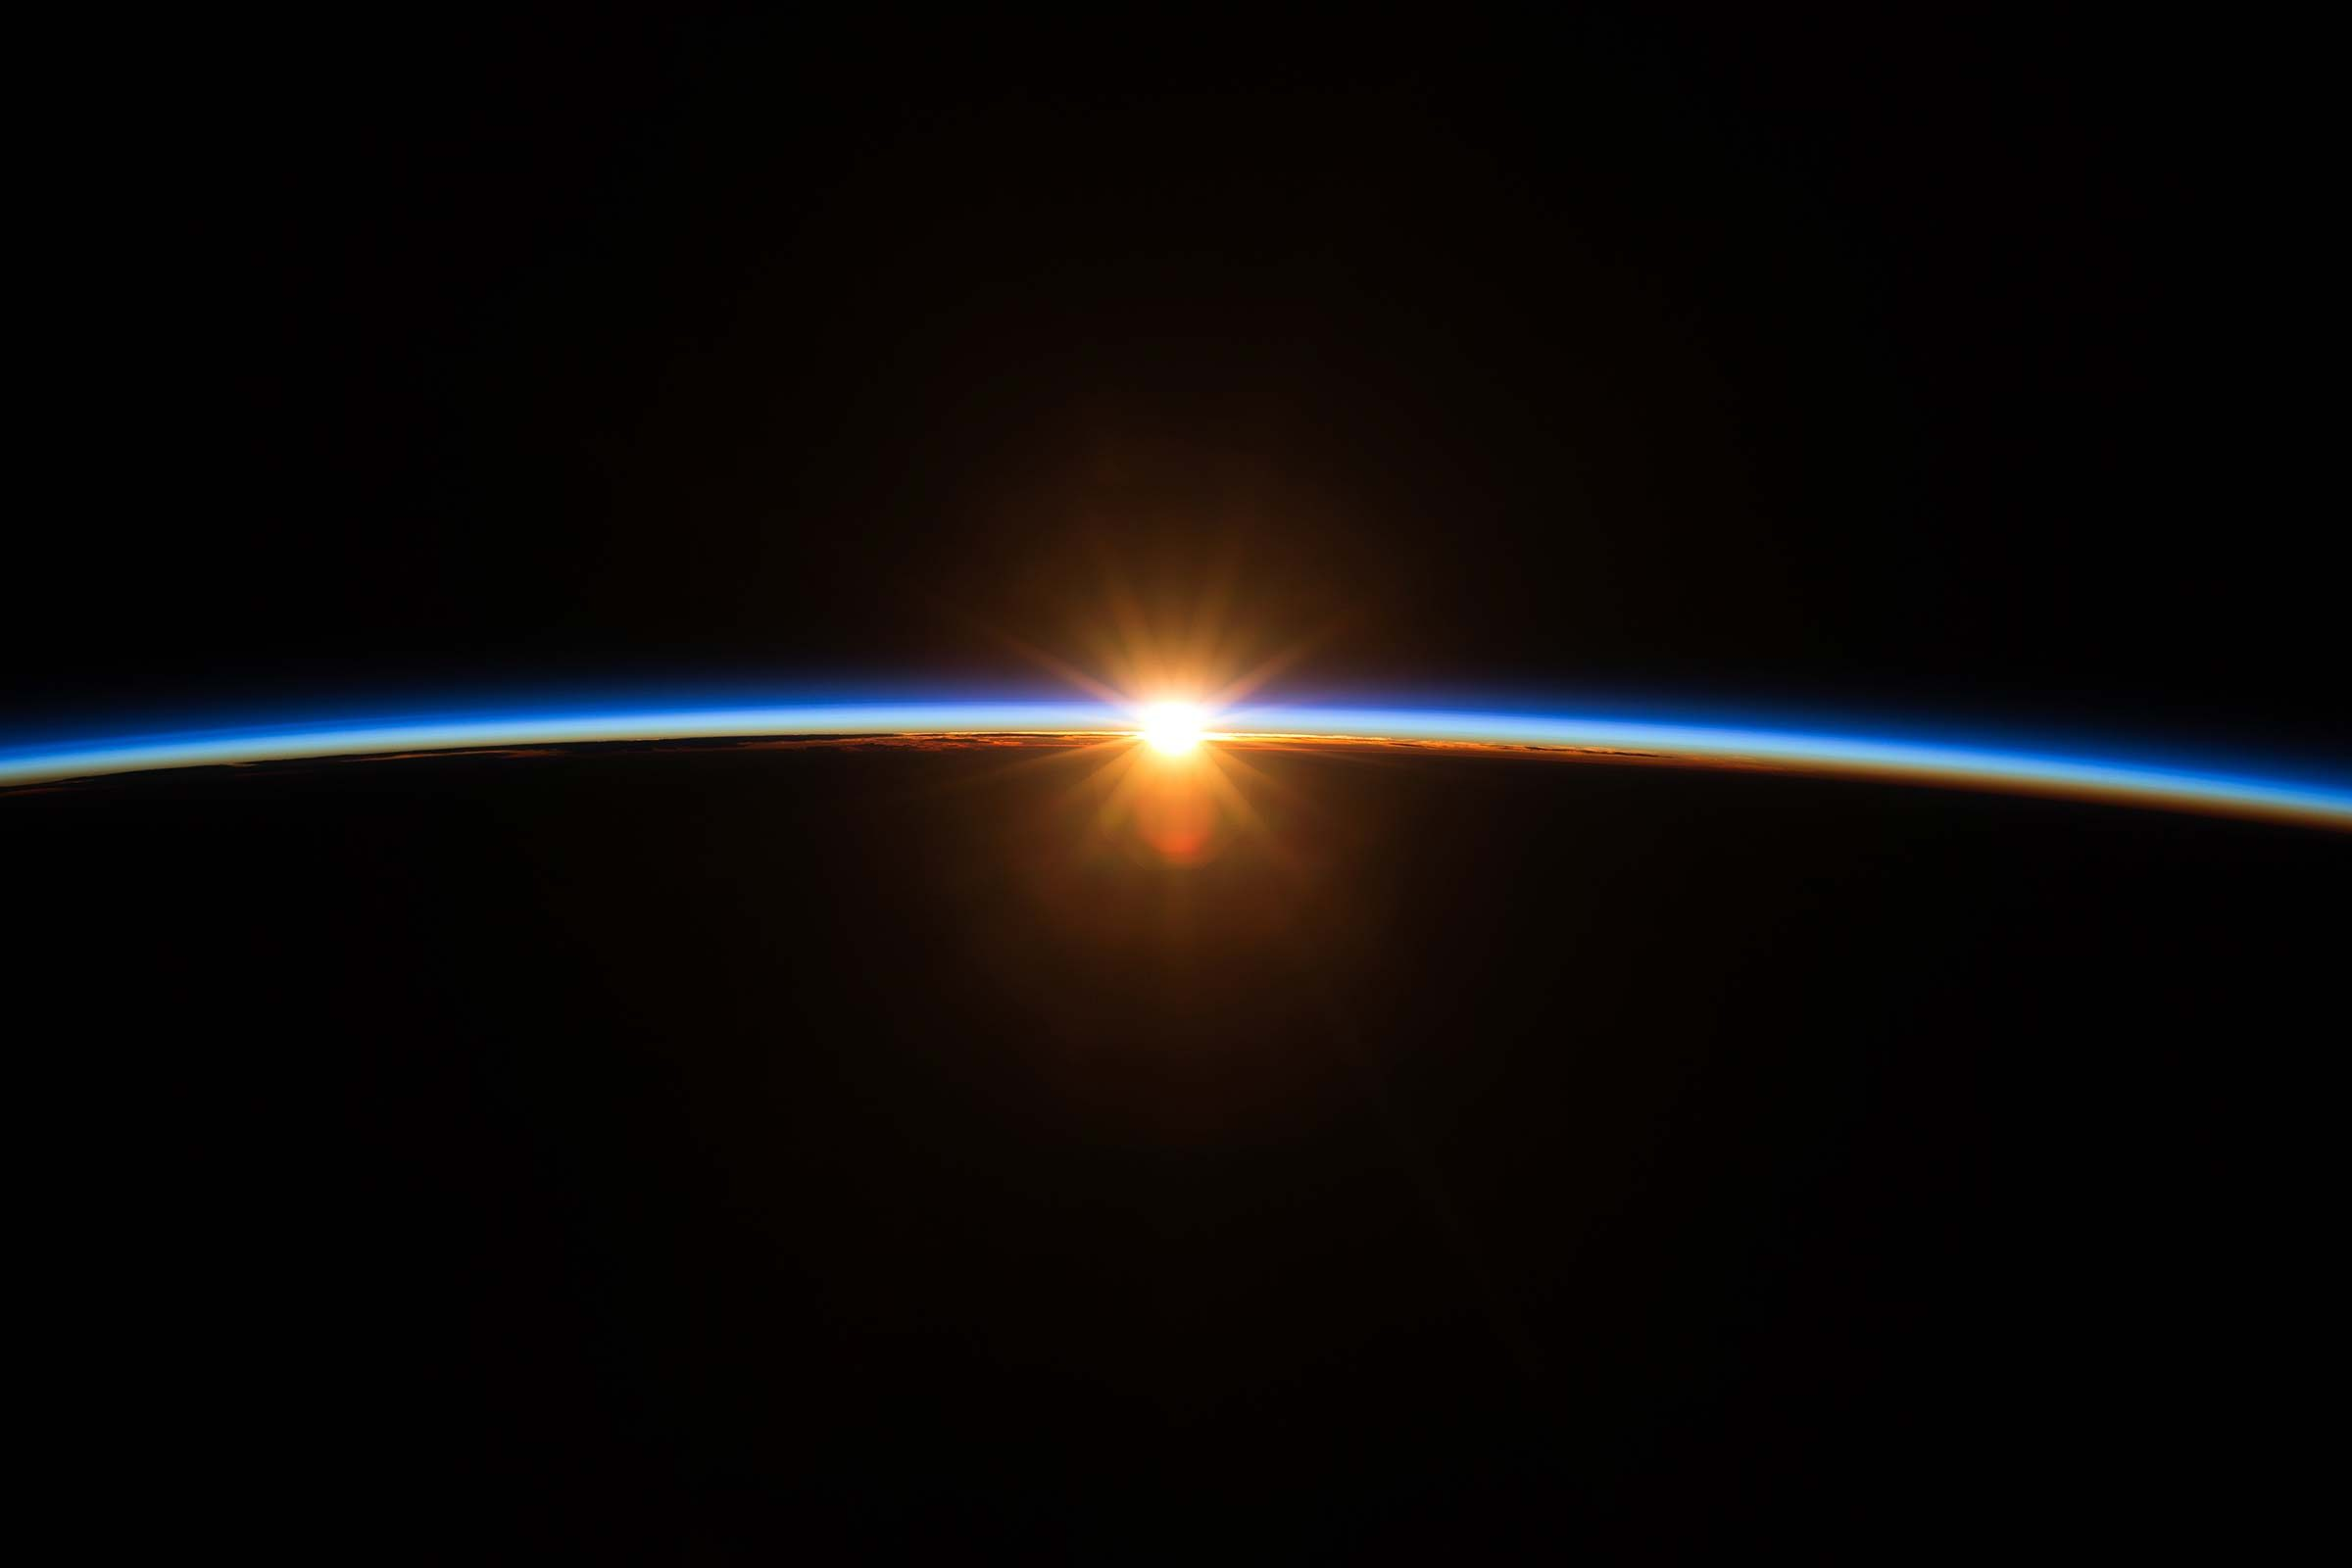 space station sunrise wallpaper - photo #10